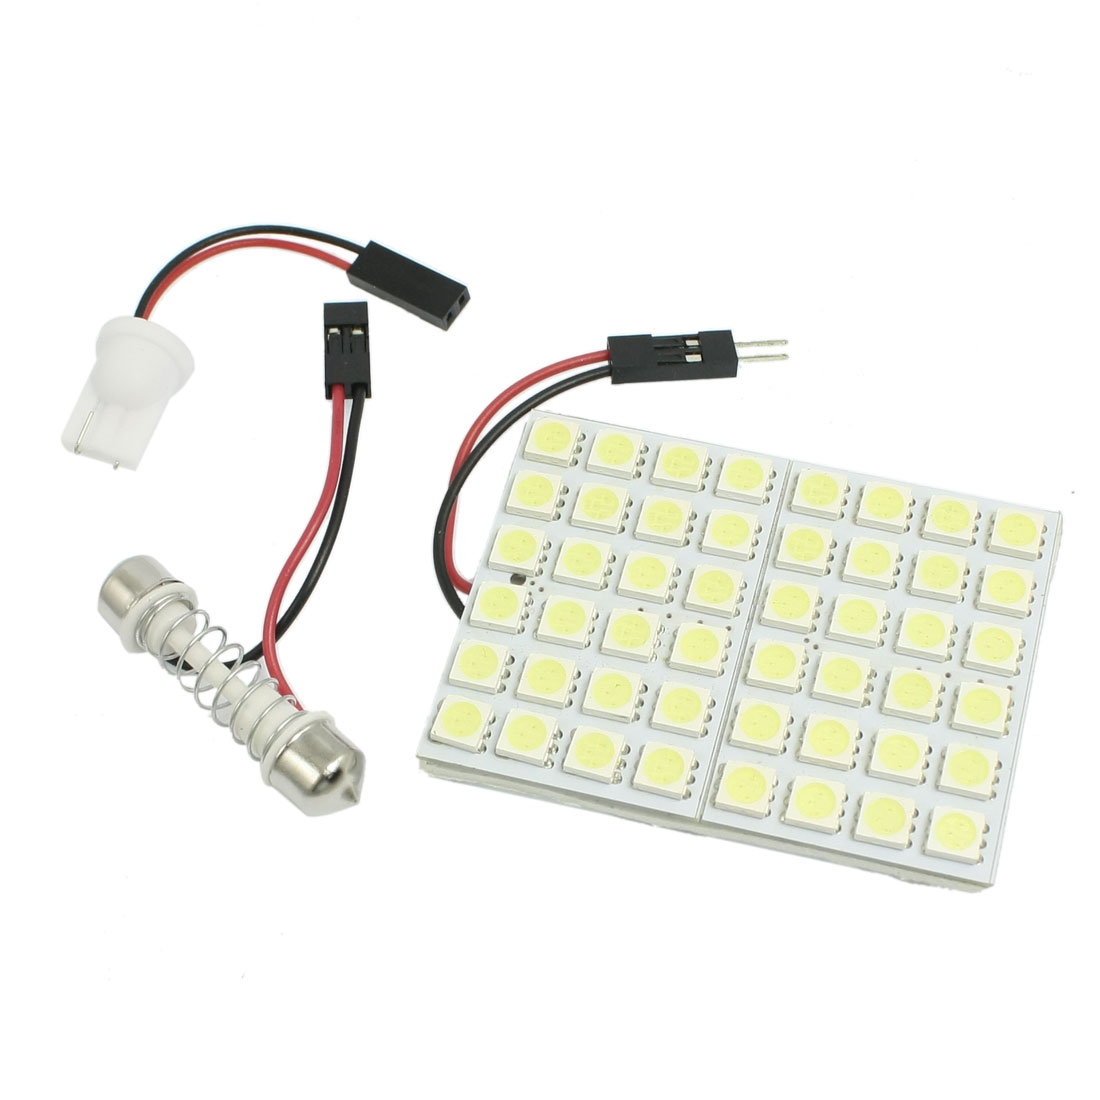 Car White 5050 SMD 48-LED Dome Light Lamp Panel w T10 Festoon Adapter